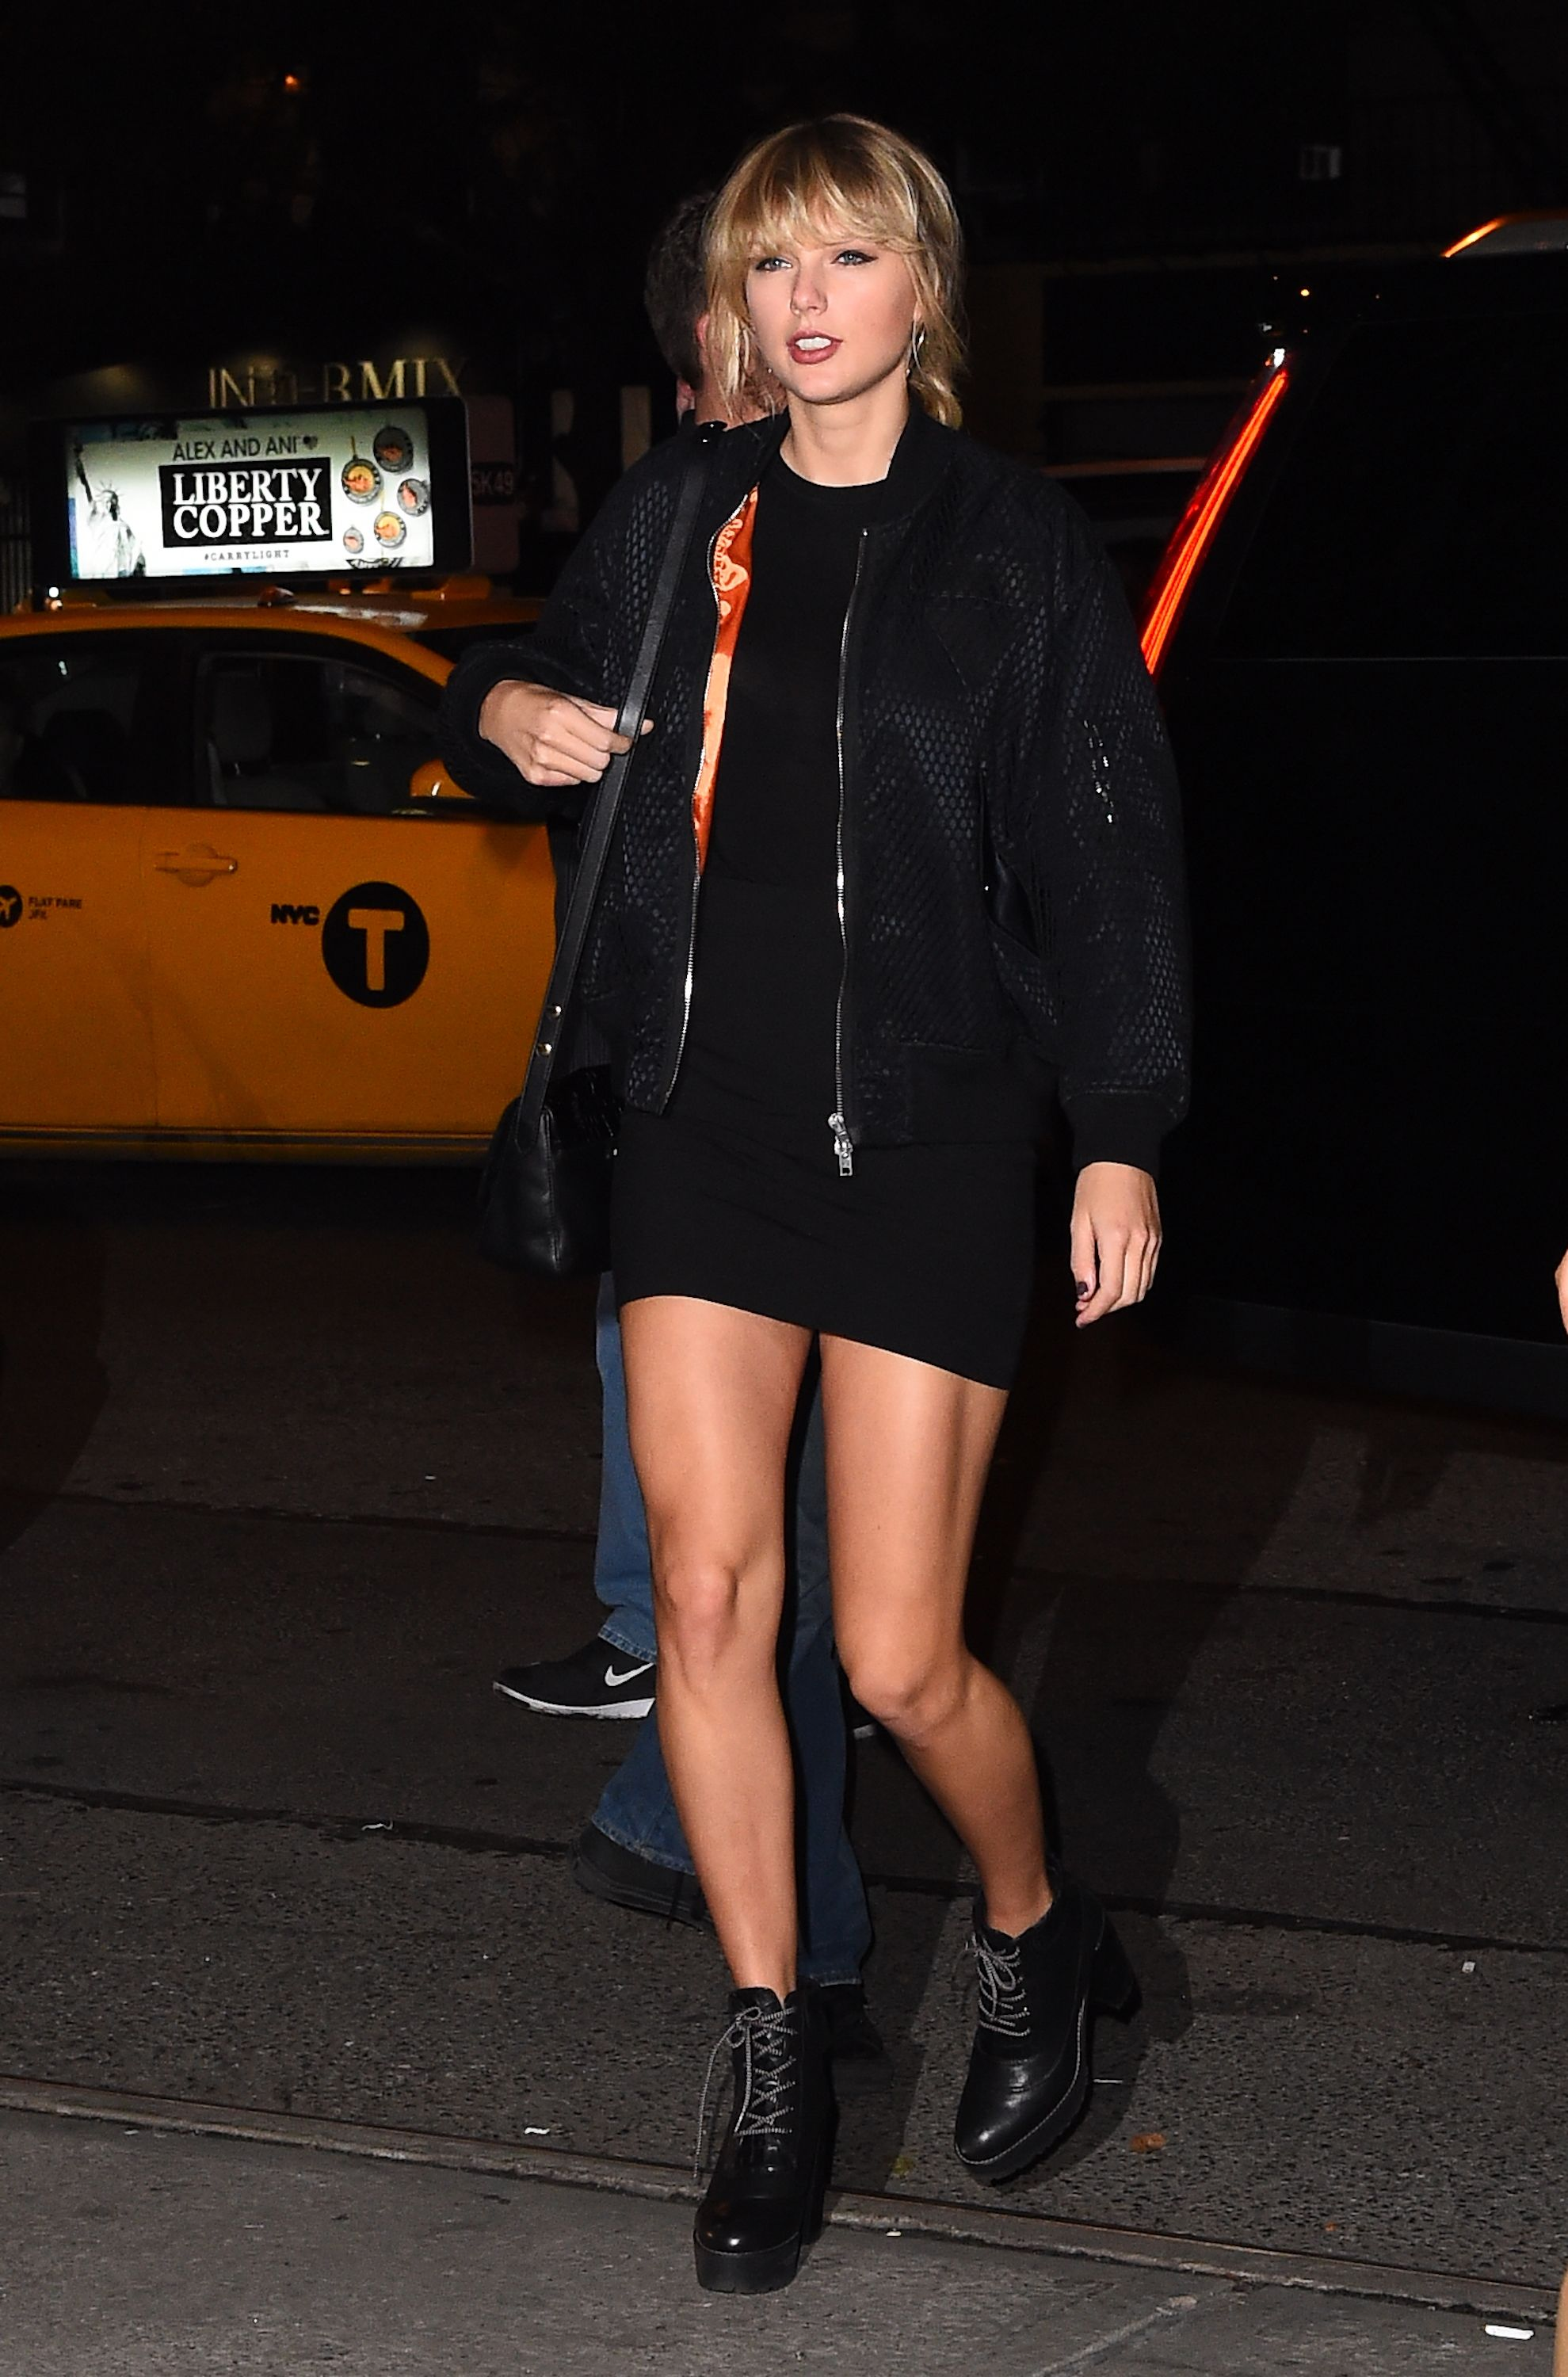 Taylor Swift Street Style - Cute Taylor Swift Outfits and Looks to Copy 7c46dff30